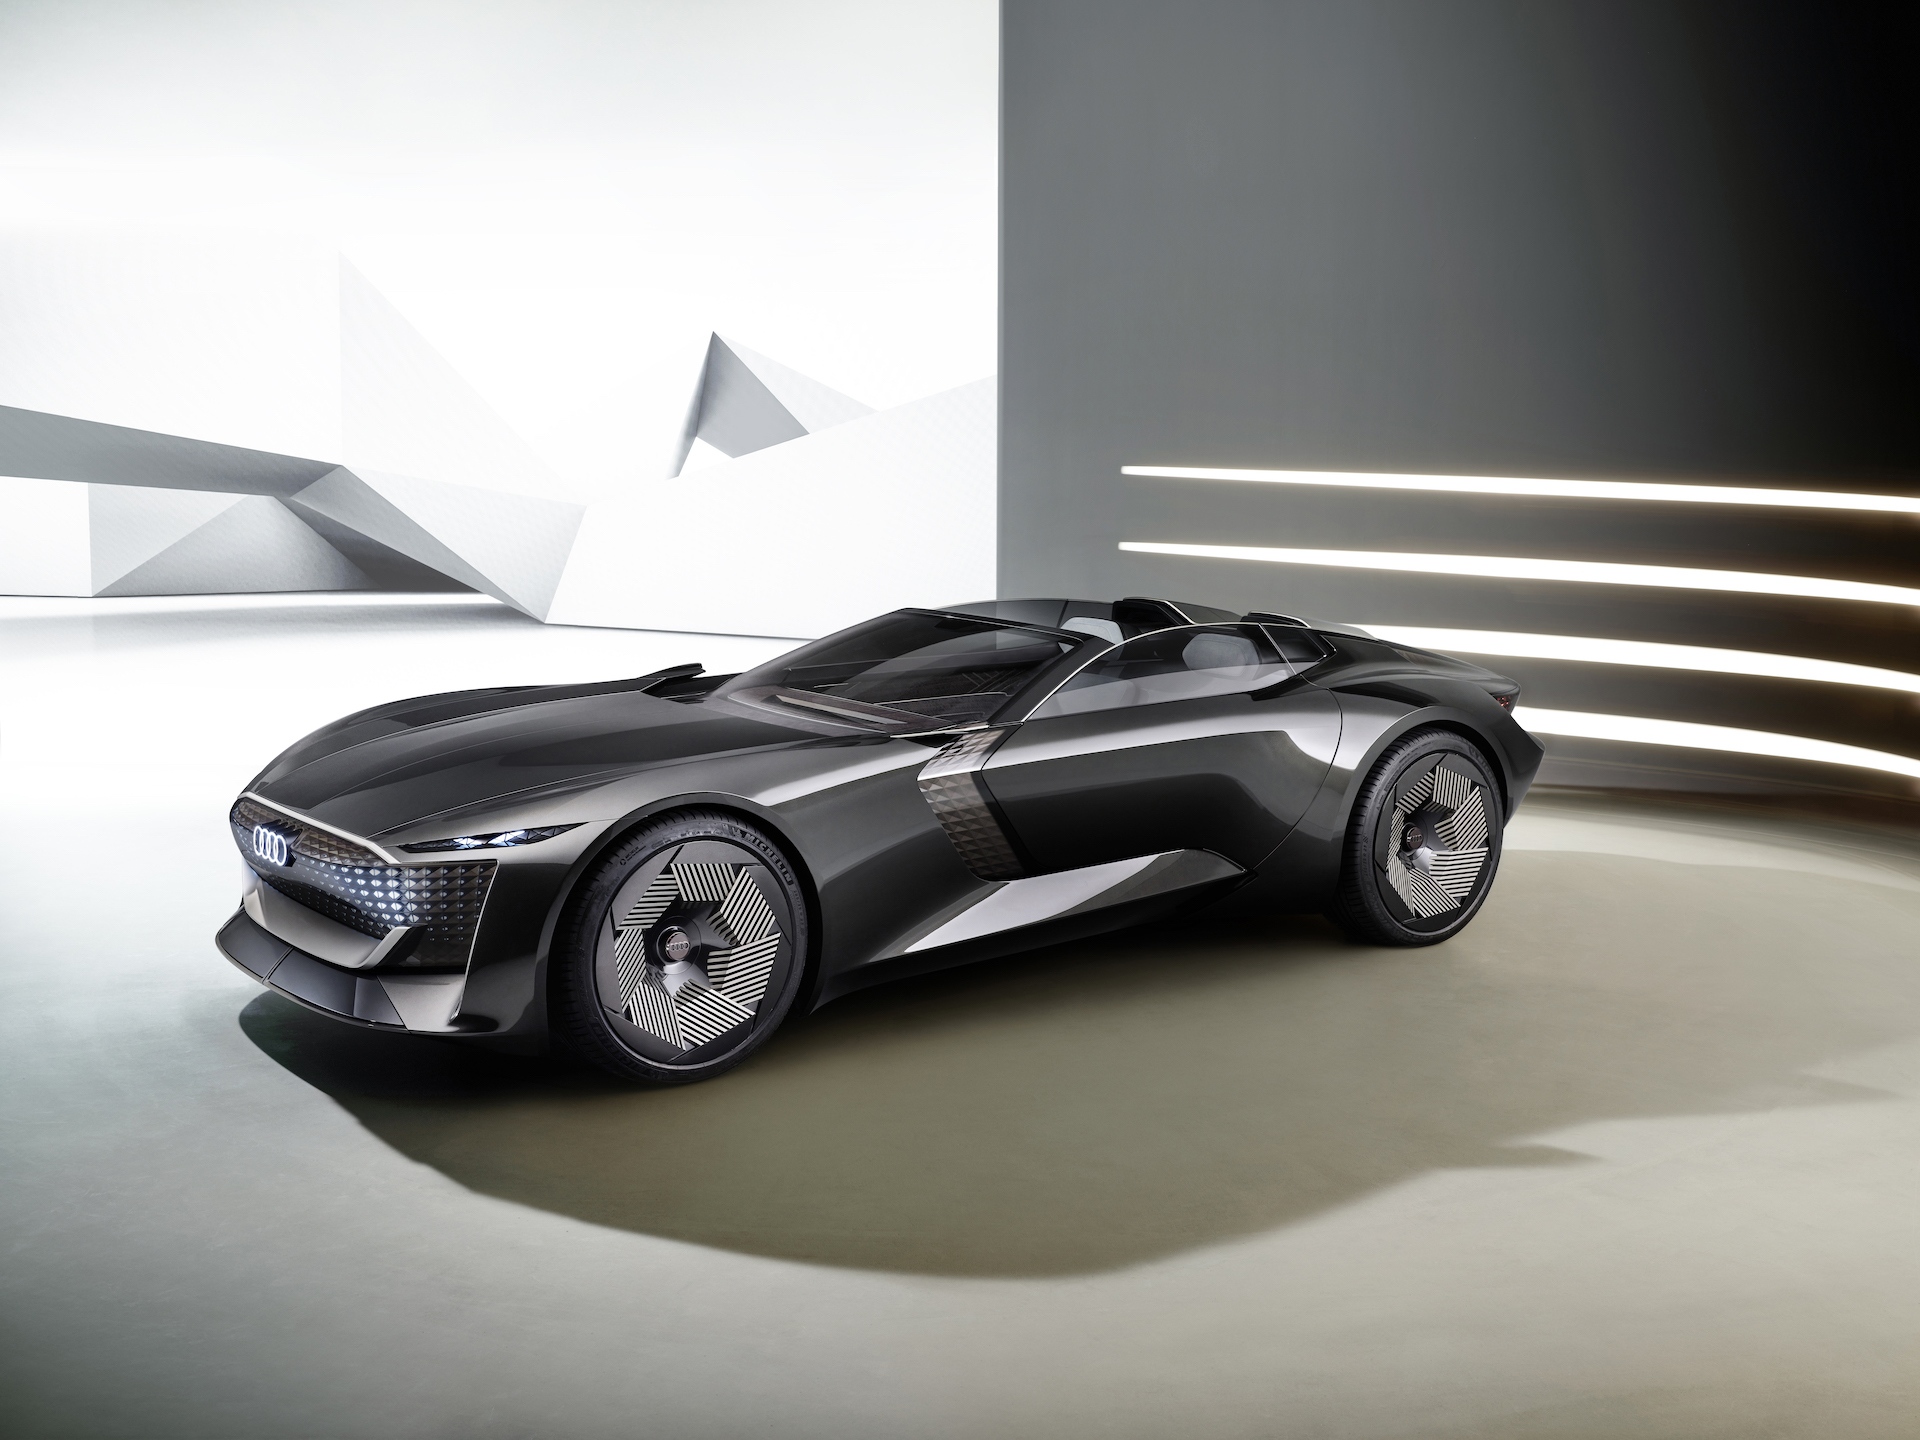 Audi plots its future around mobility, not just EVs